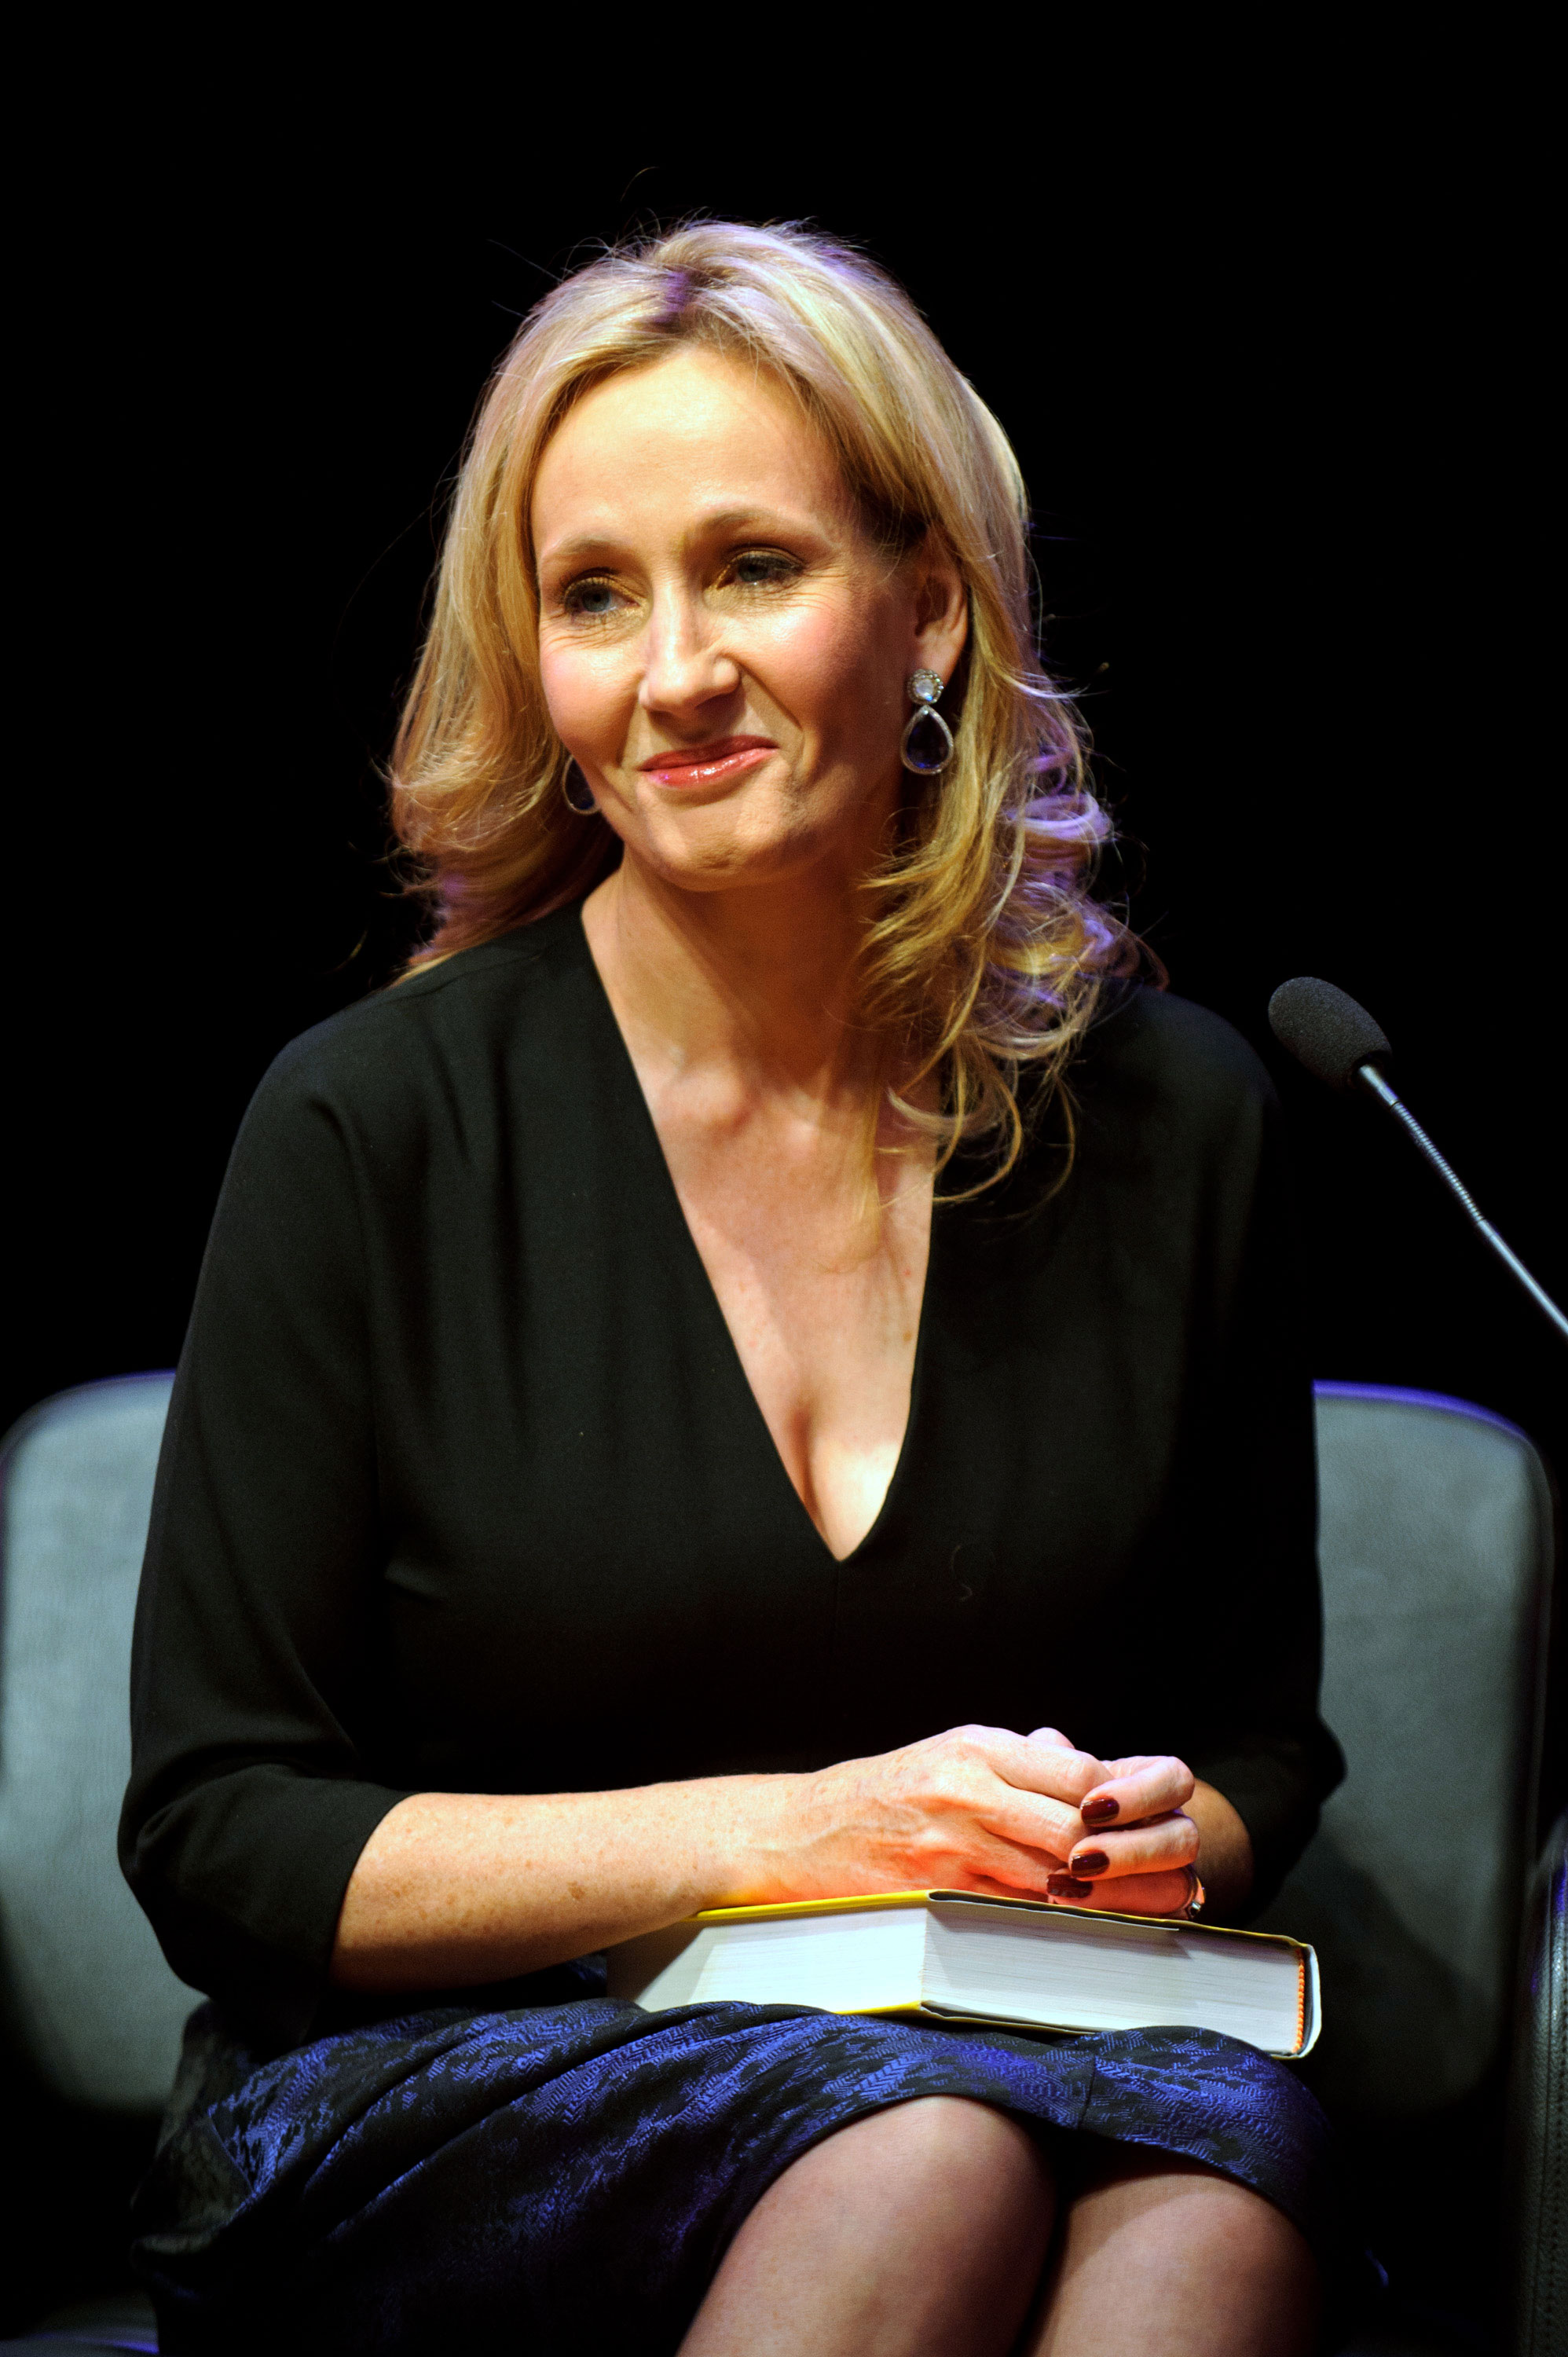 jk rowling a rise to fame essay Must read life lessons from the inspiring life story of jk rowling she lead a life of poverty and hardship before her meteoric rise to fame and success.